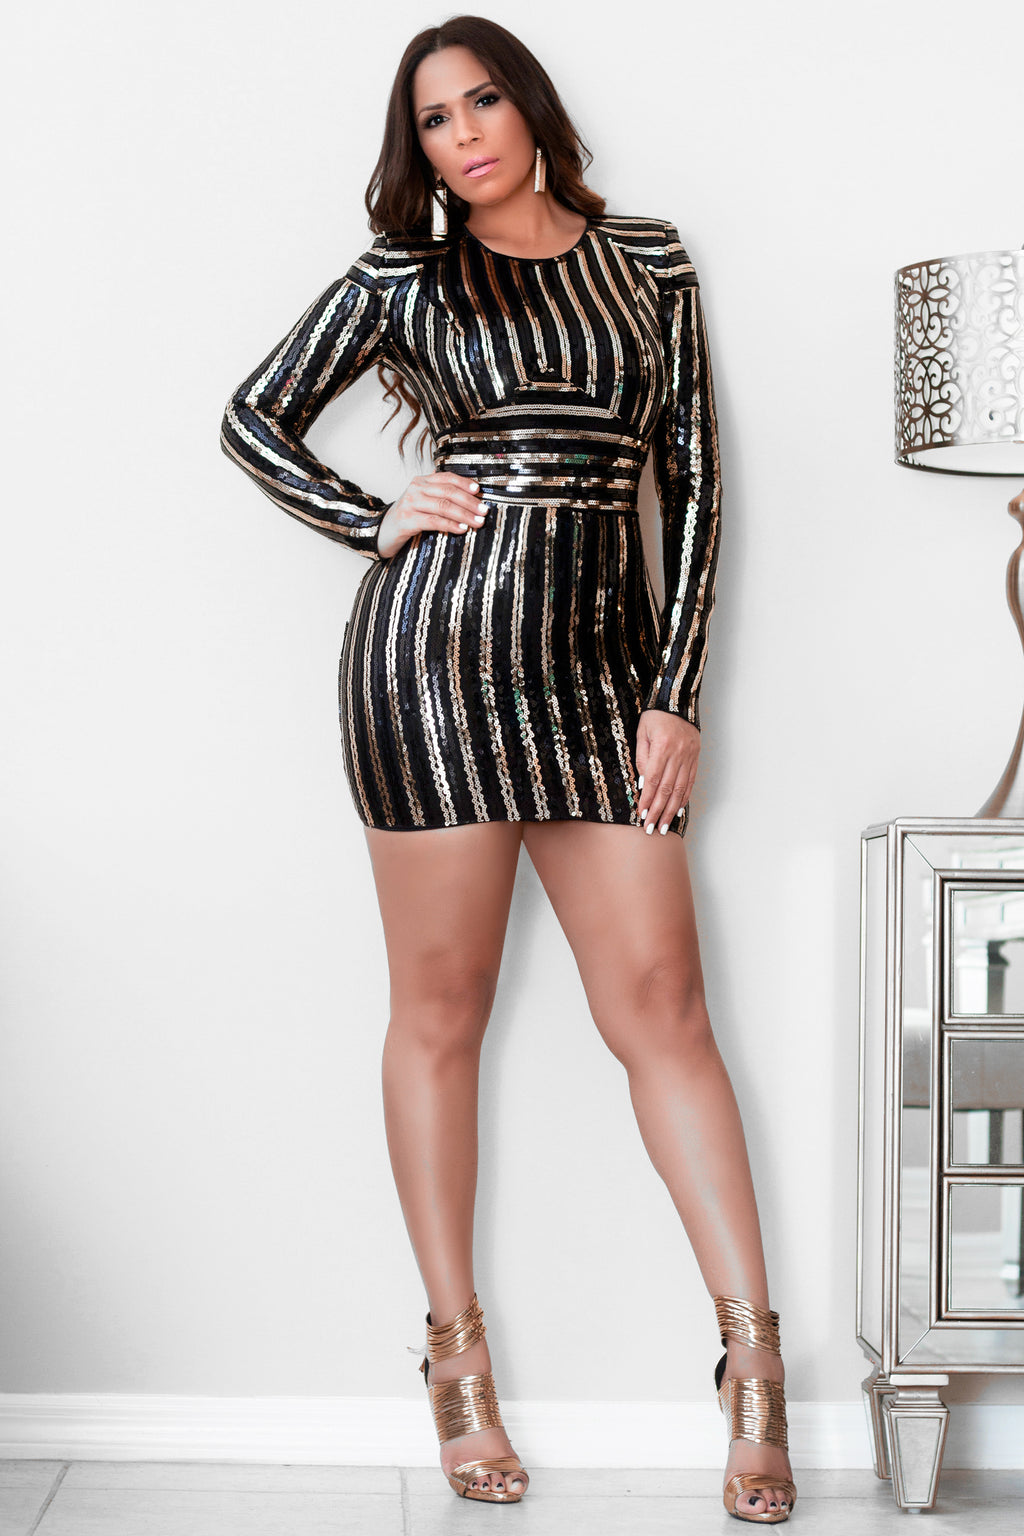 Wendy Black Gold Sequins Long Sleeves Bodycon Mini Dress